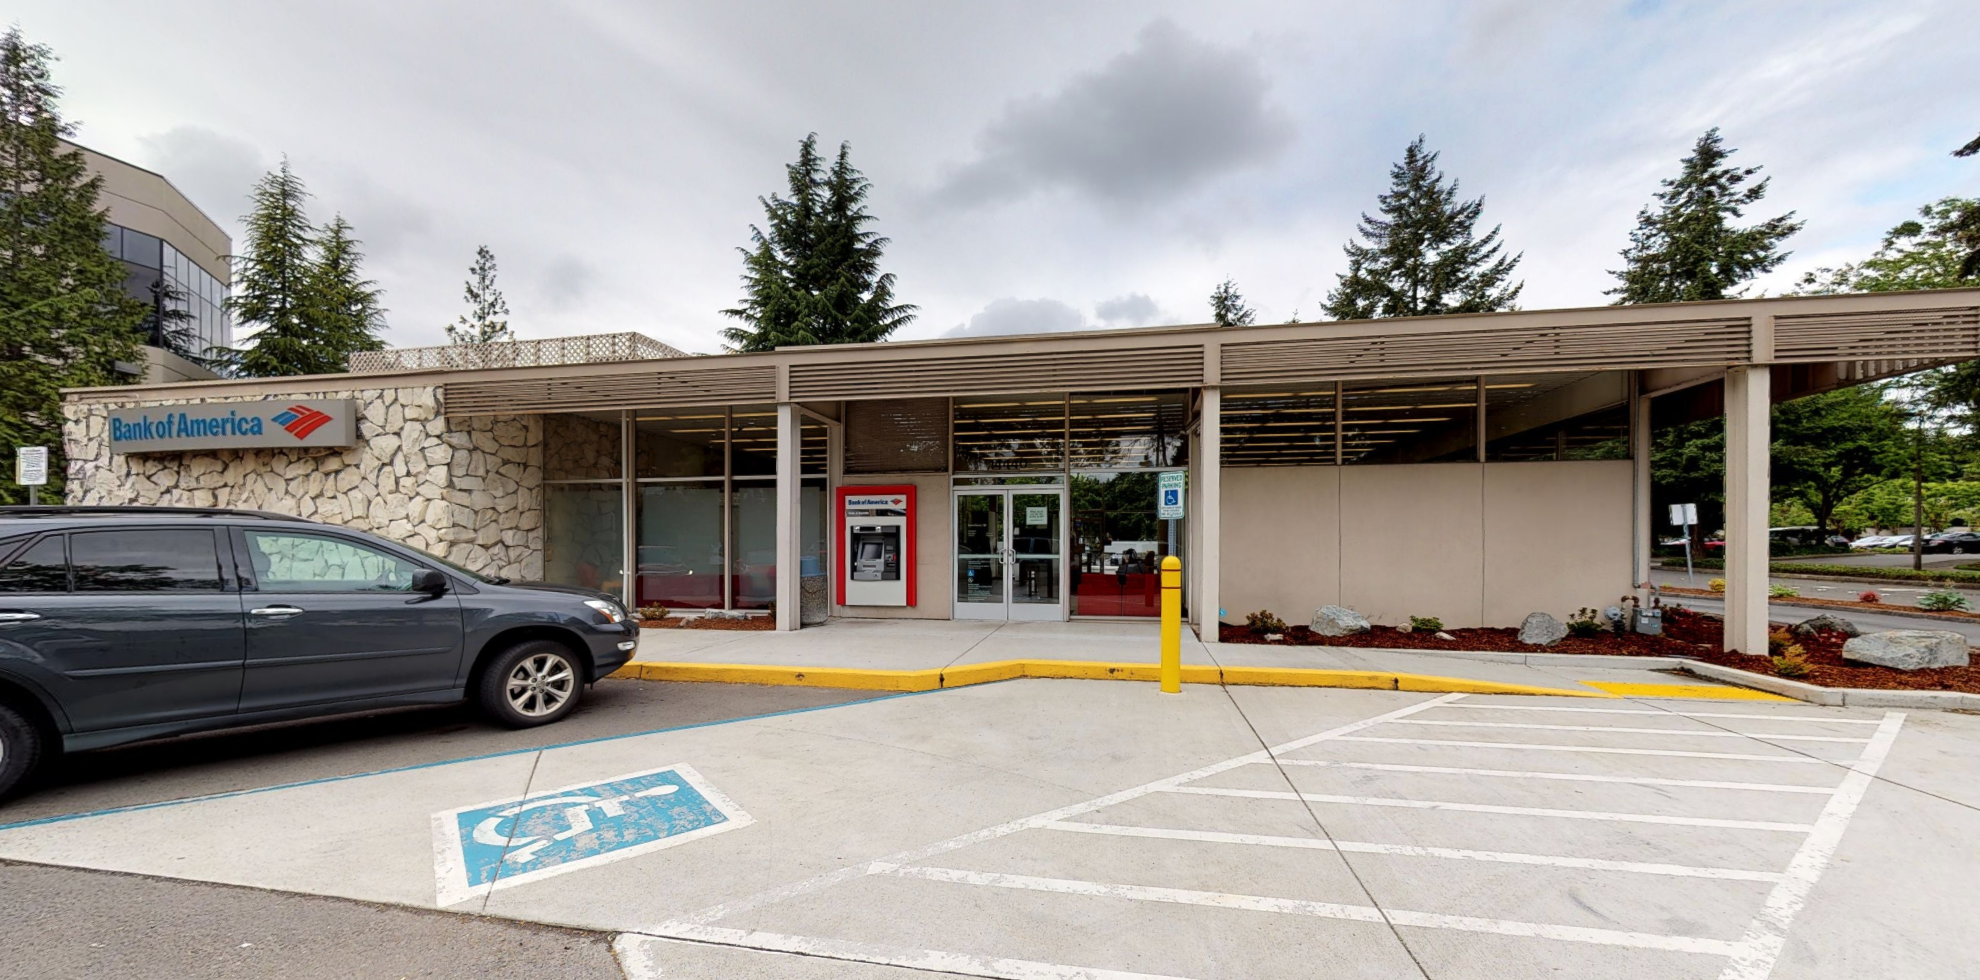 Bank of America financial center with drive-thru ATM   14440 SE Eastgate Way, Bellevue, WA 98007